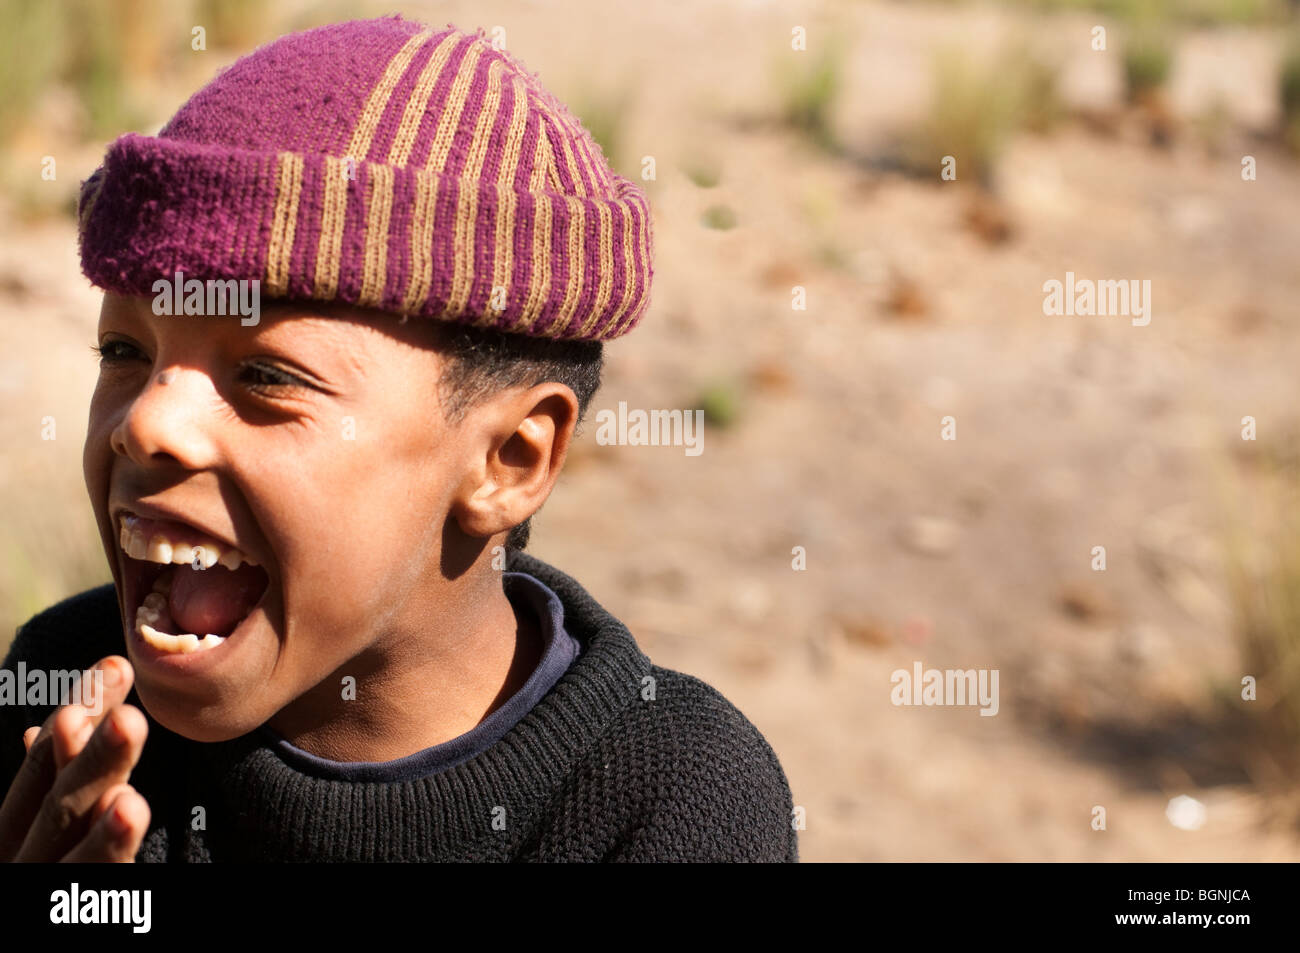 Egyptian youth with striped cap laughing - Stock Image